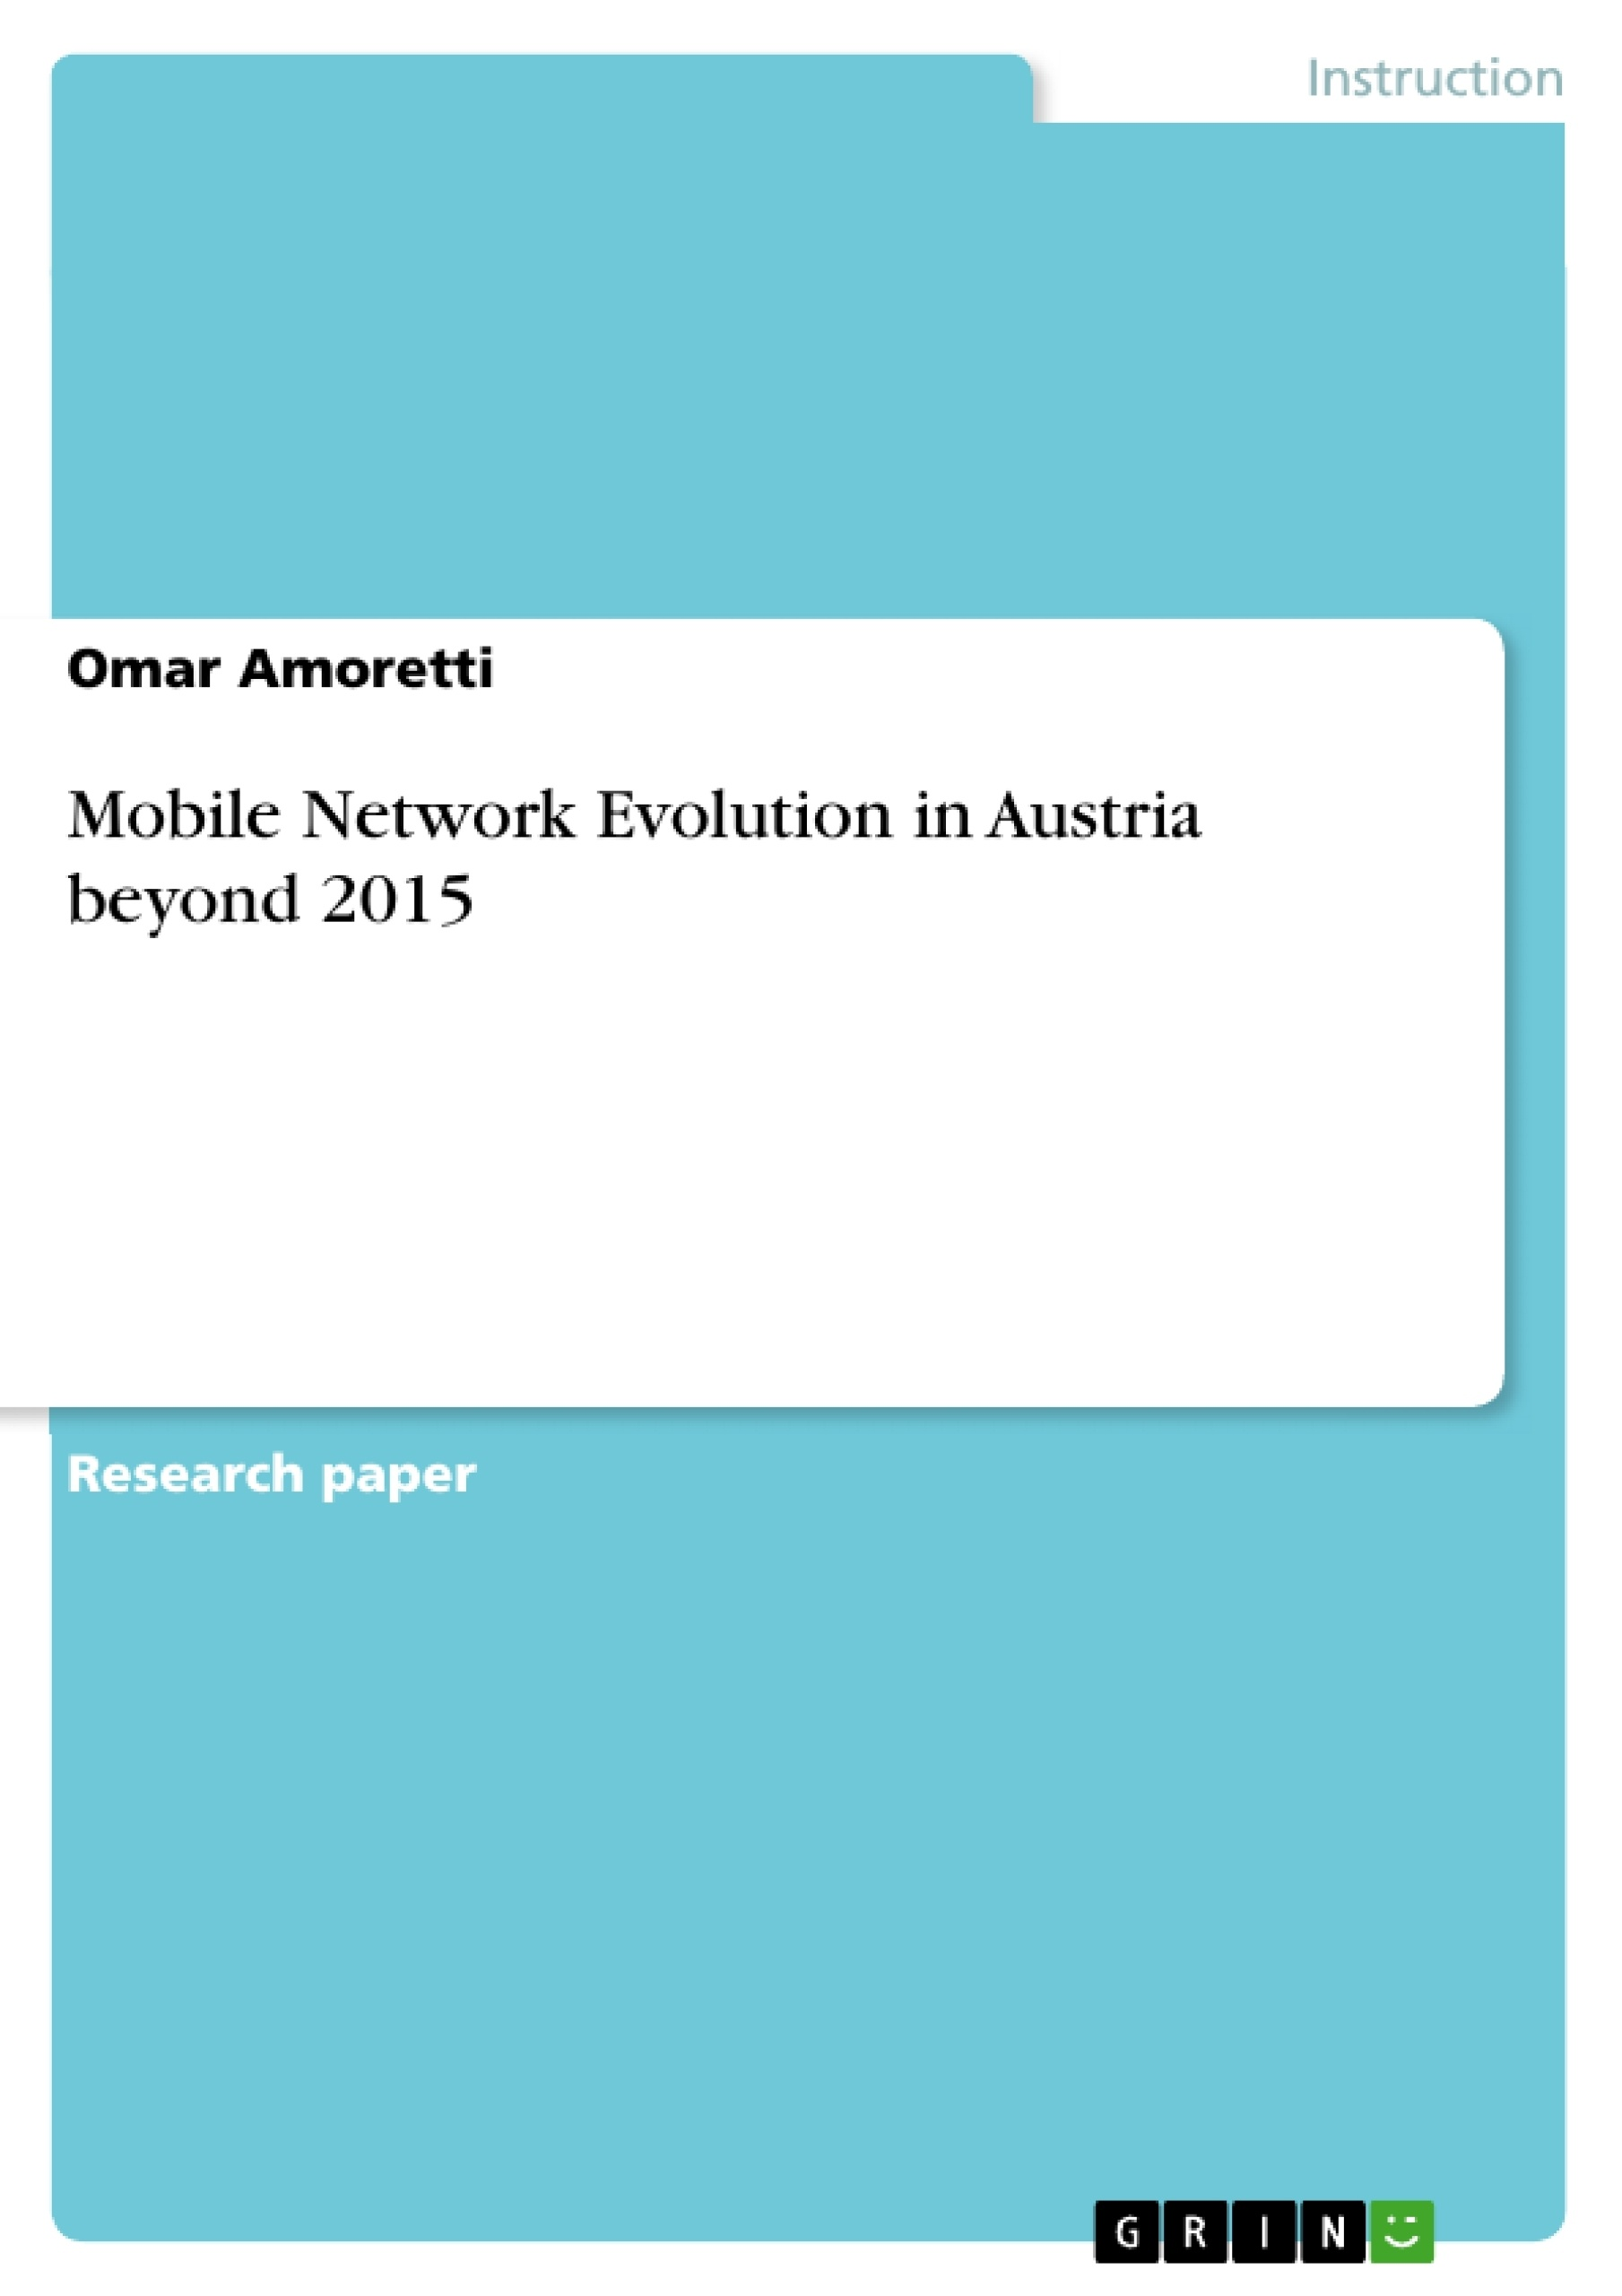 Title: Mobile Network Evolution in Austria beyond 2015